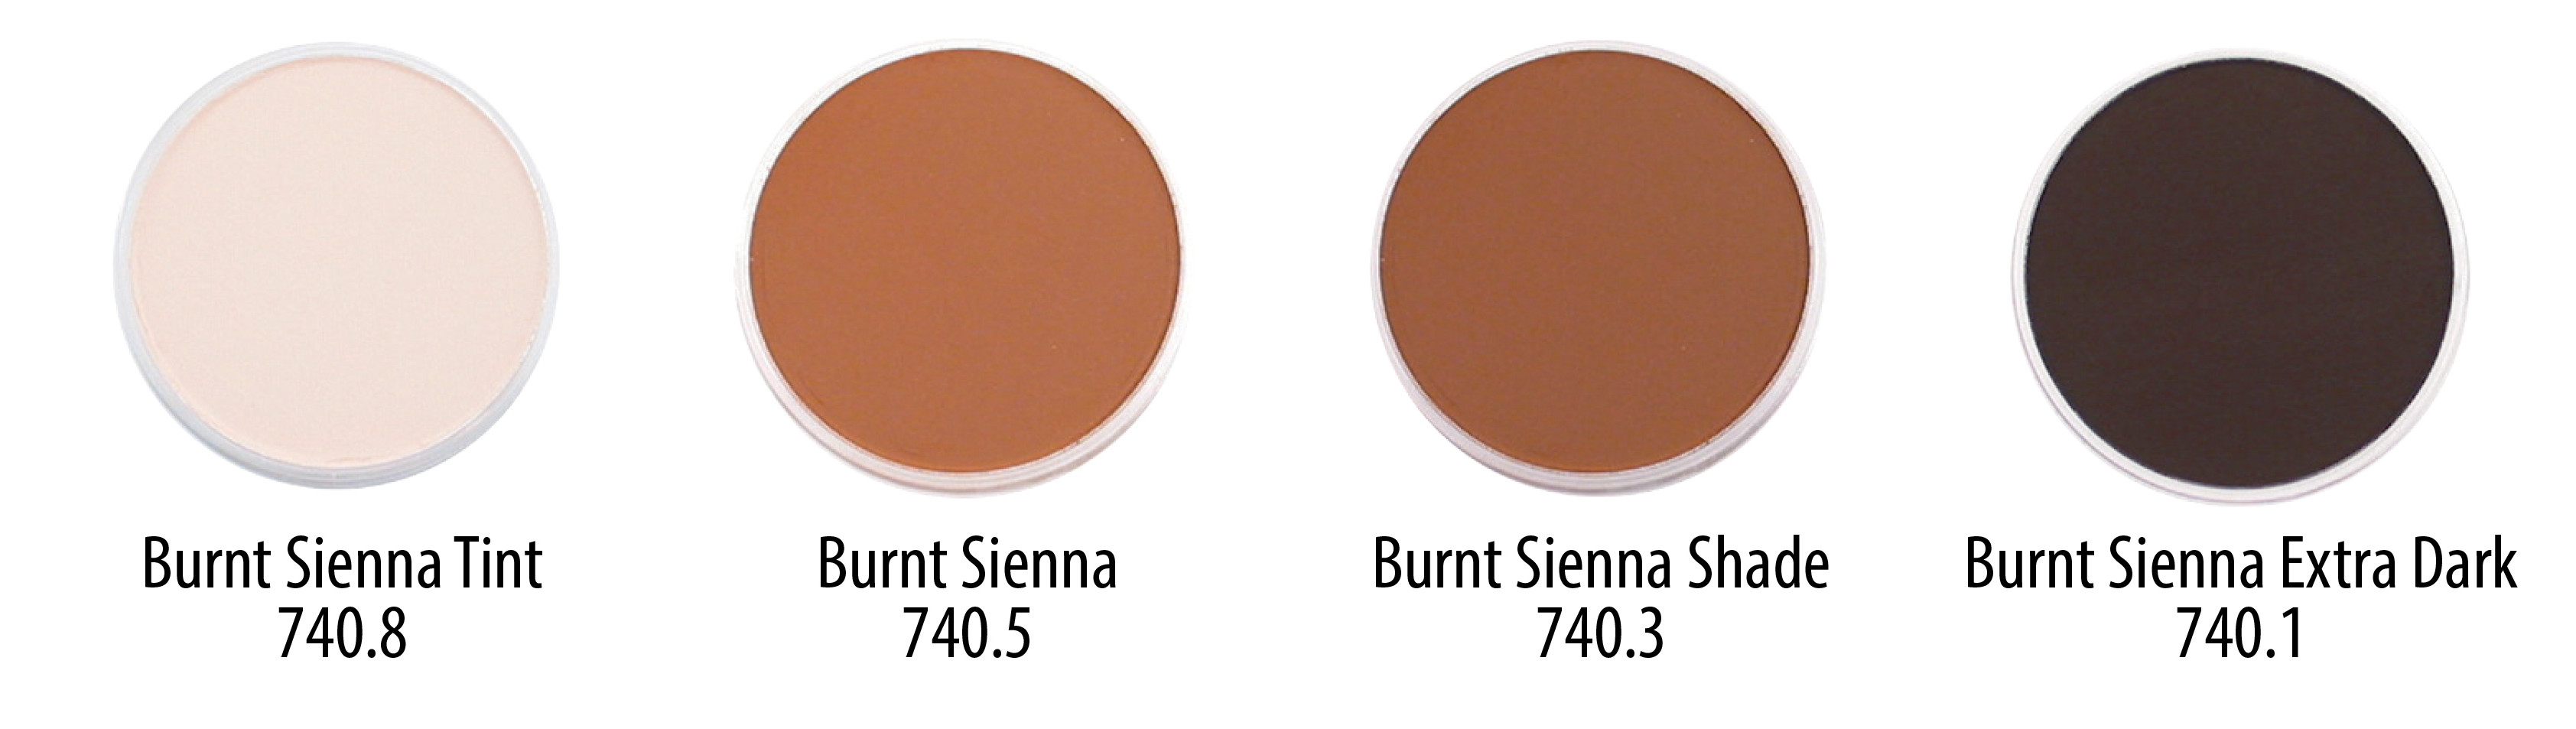 Pans - Tints to Extra Dark BURNT SIENNA